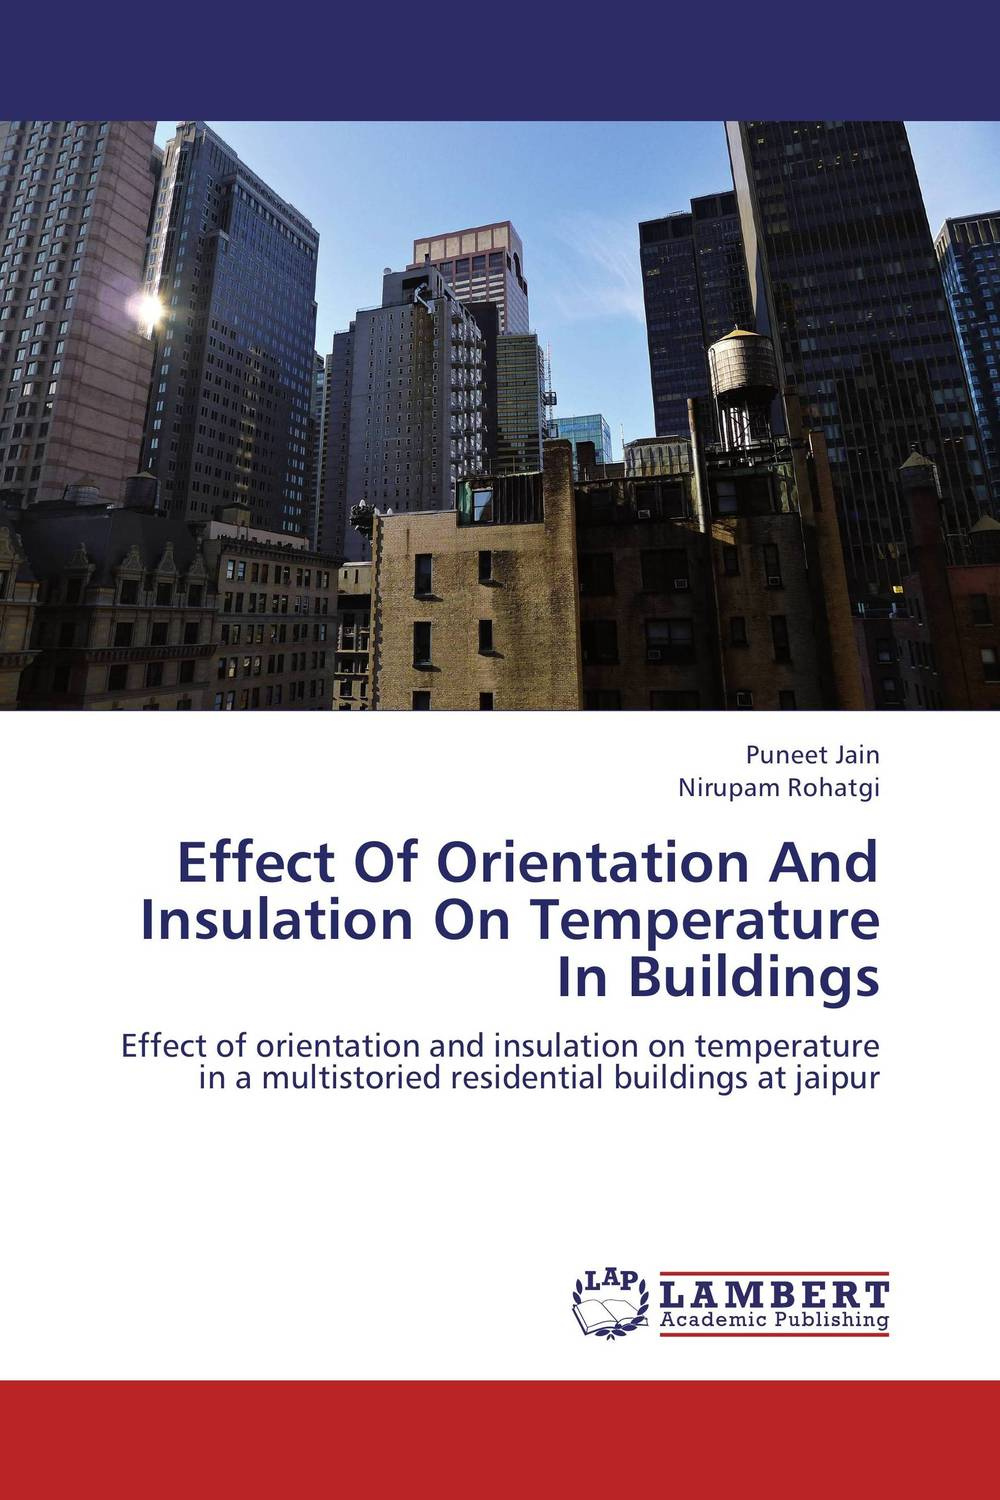 c6a 0o 1c2l Effect Of Orientation And Insulation On Temperature In Buildings